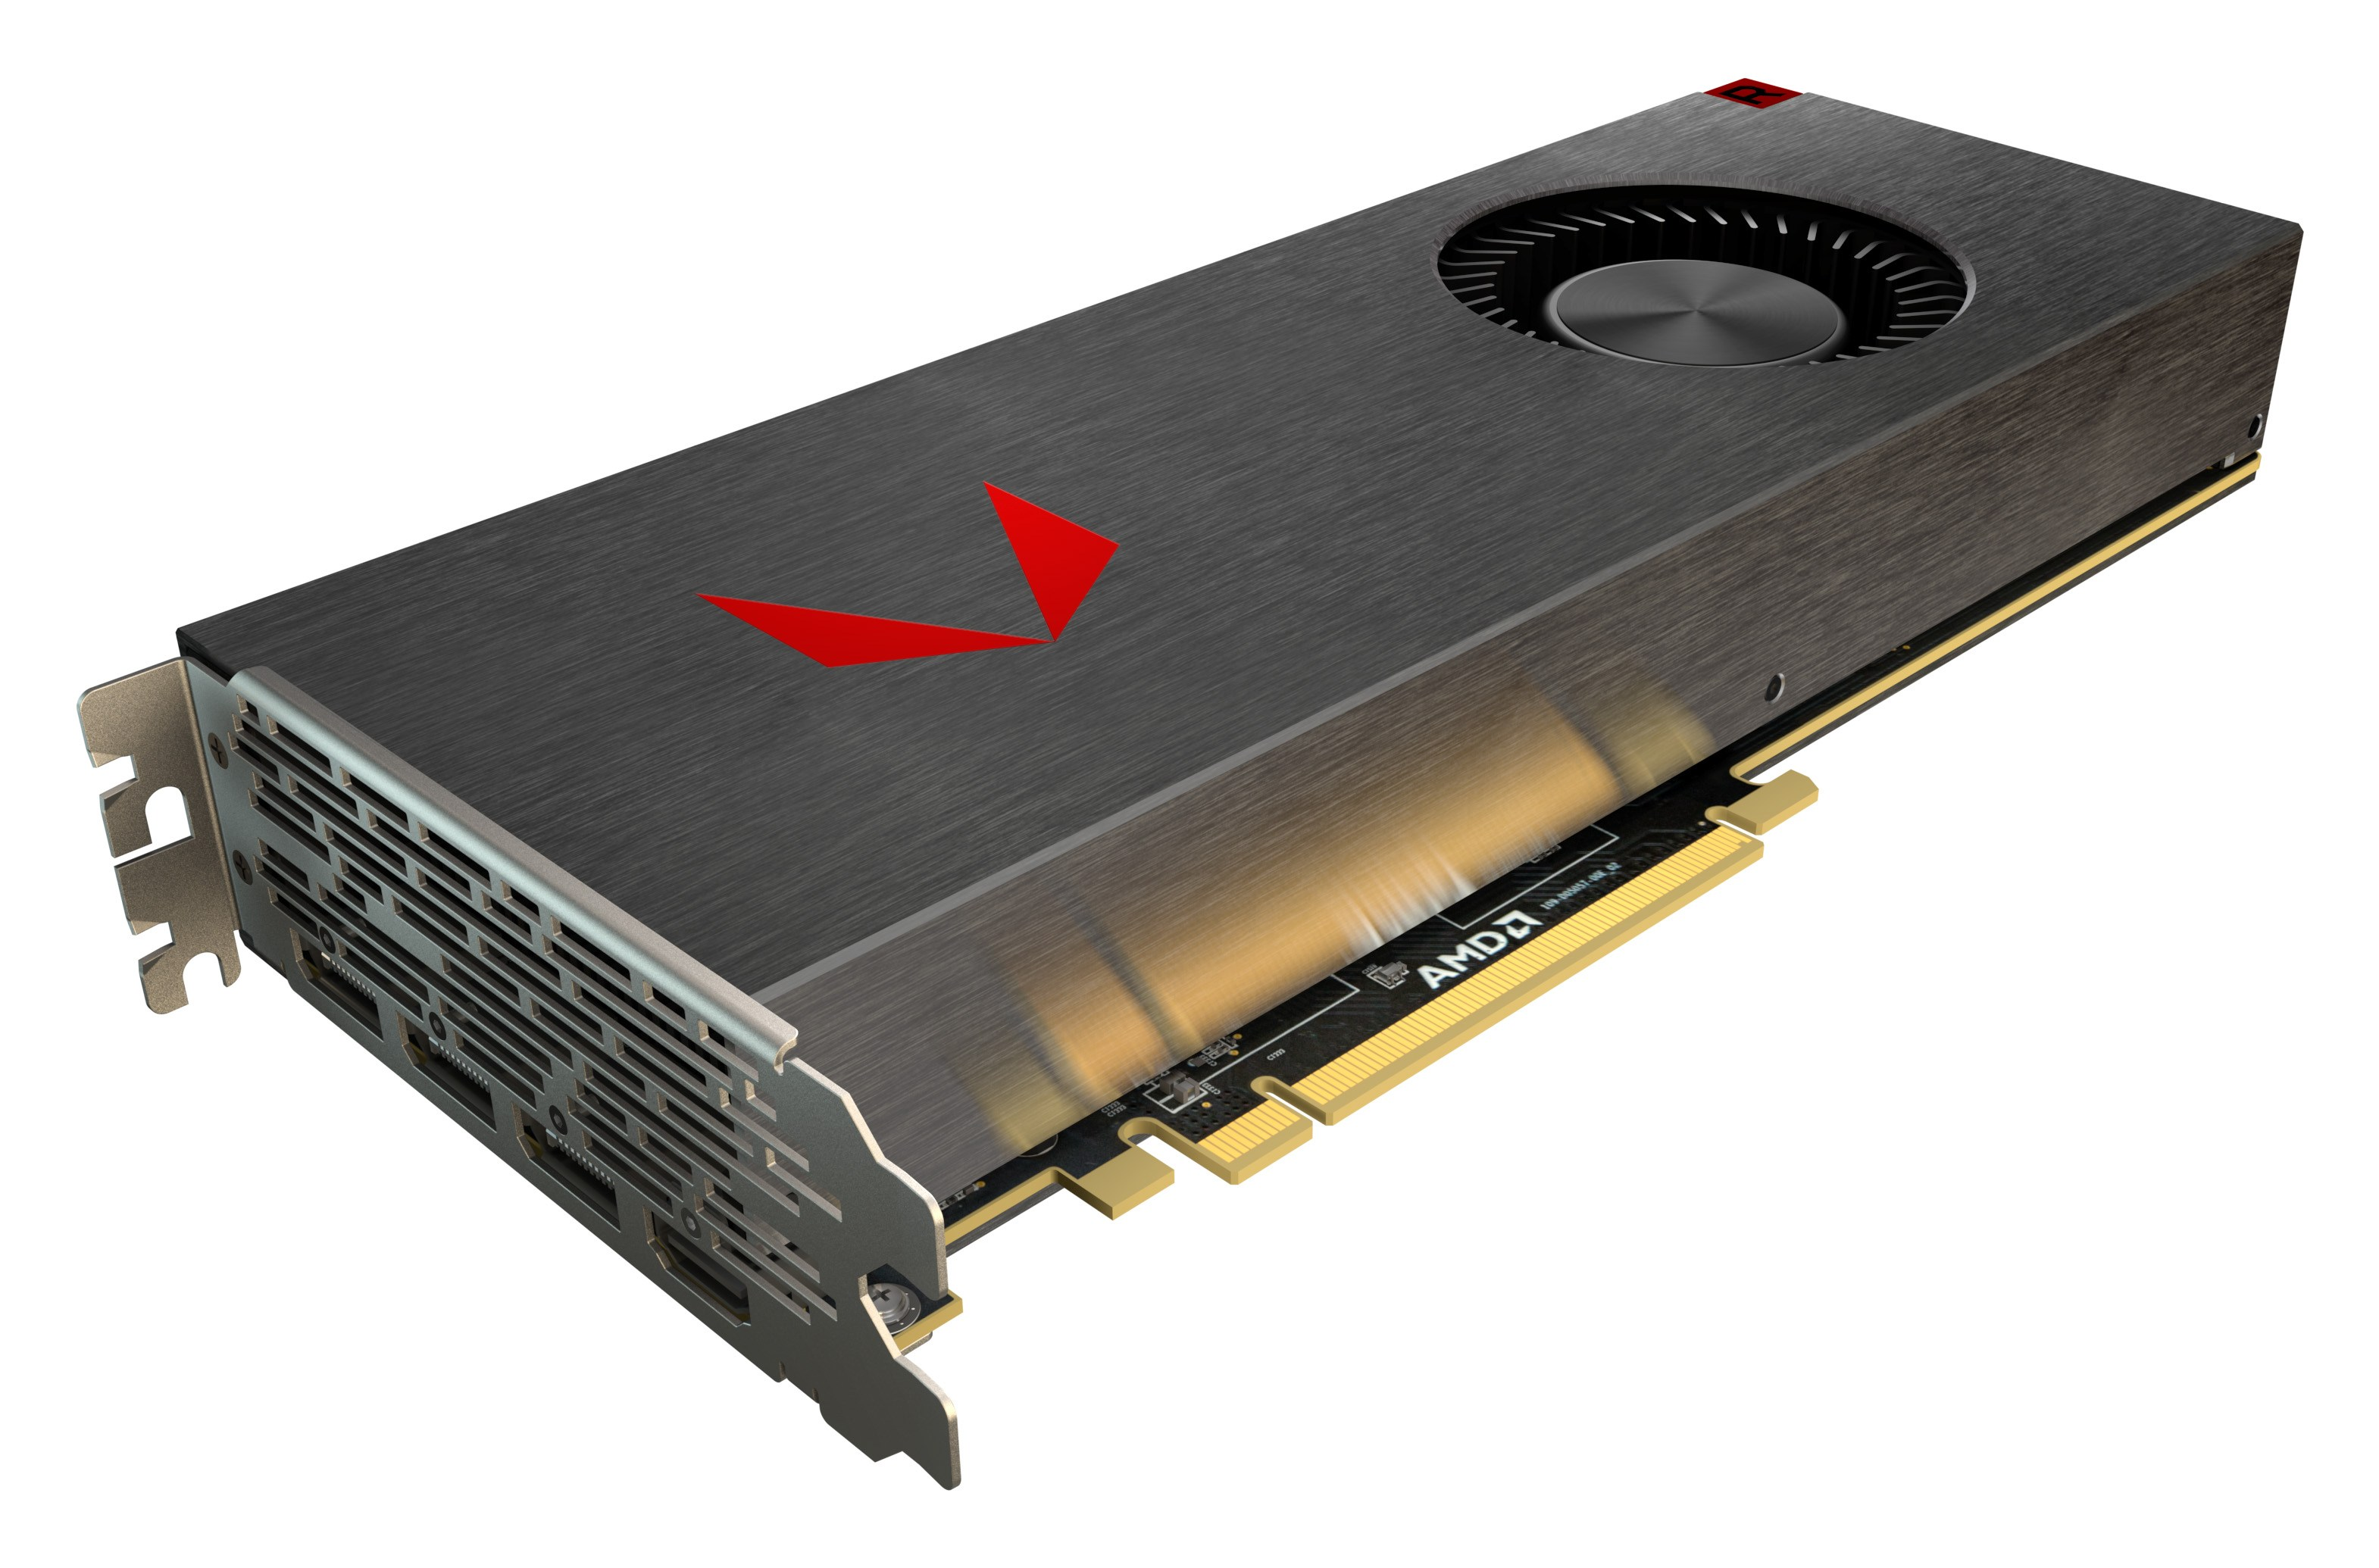 AMD Radeon RX Vega : l'alternative aux GeForce GTX 1070 et 1080